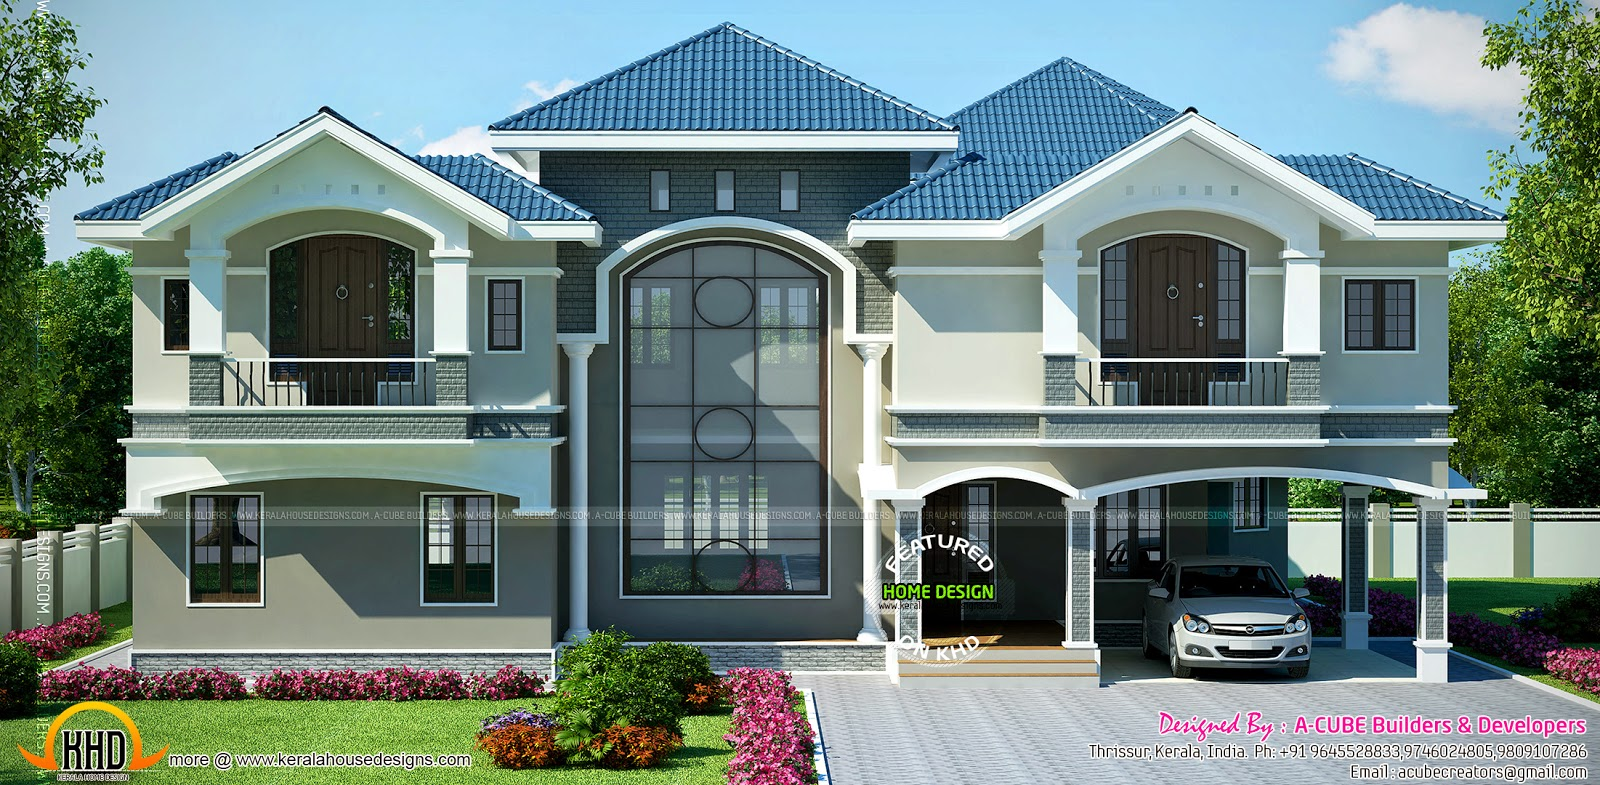 super luxury house in beautiful style kerala home design and floor plans. Black Bedroom Furniture Sets. Home Design Ideas